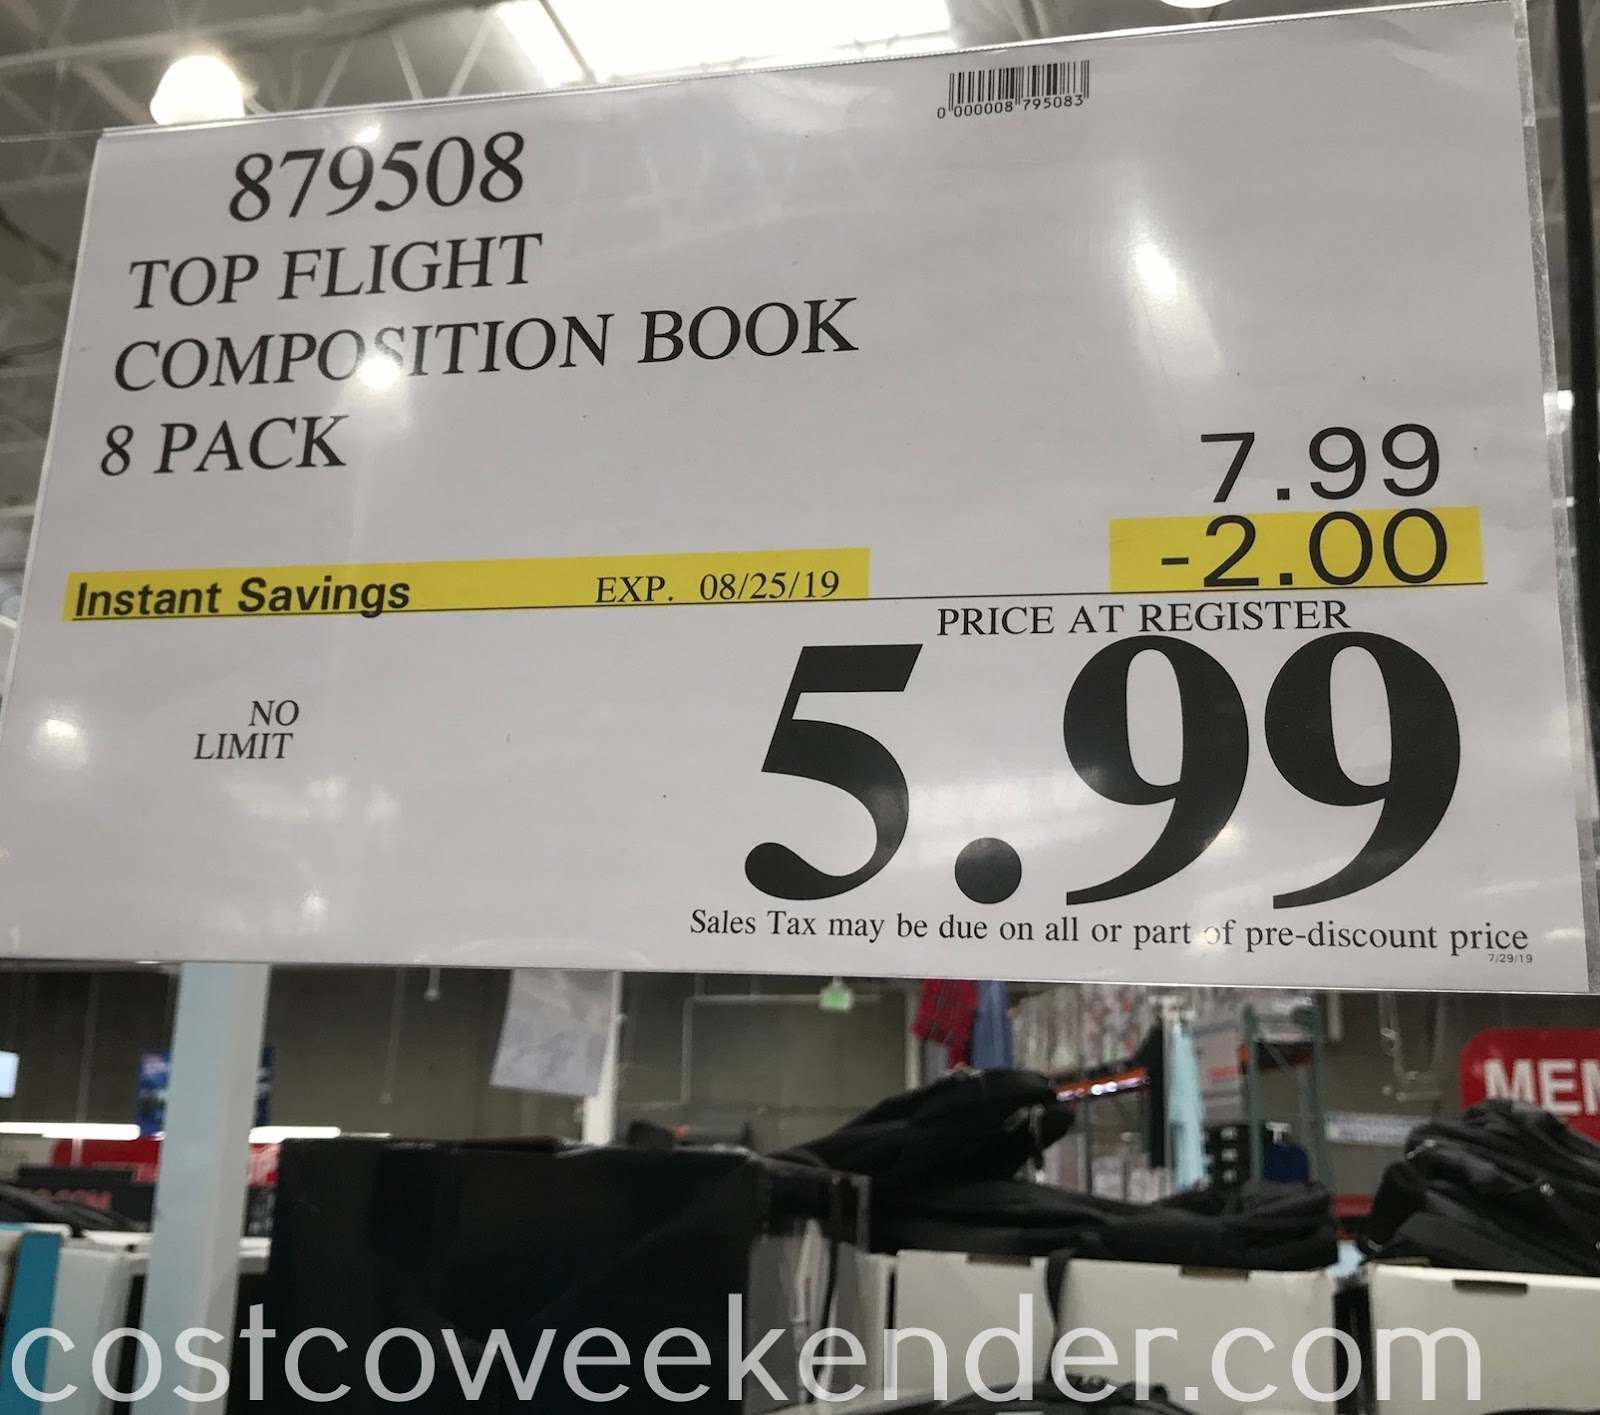 Deal for an 8 pack of Top Flight Composition Books at Costco